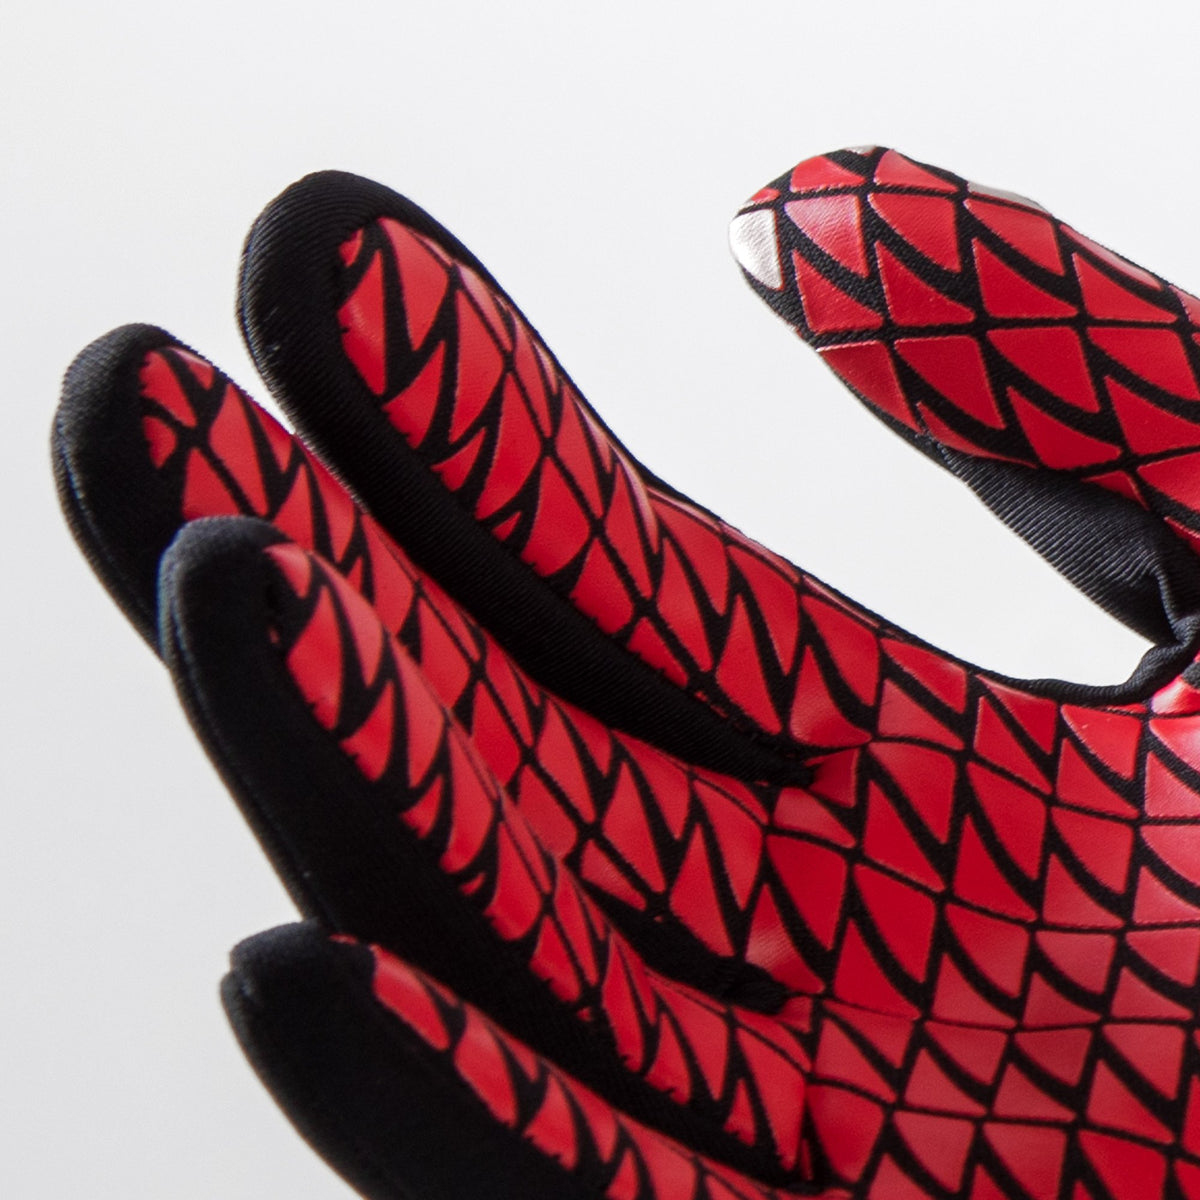 Neoprene Swim Gloves finger